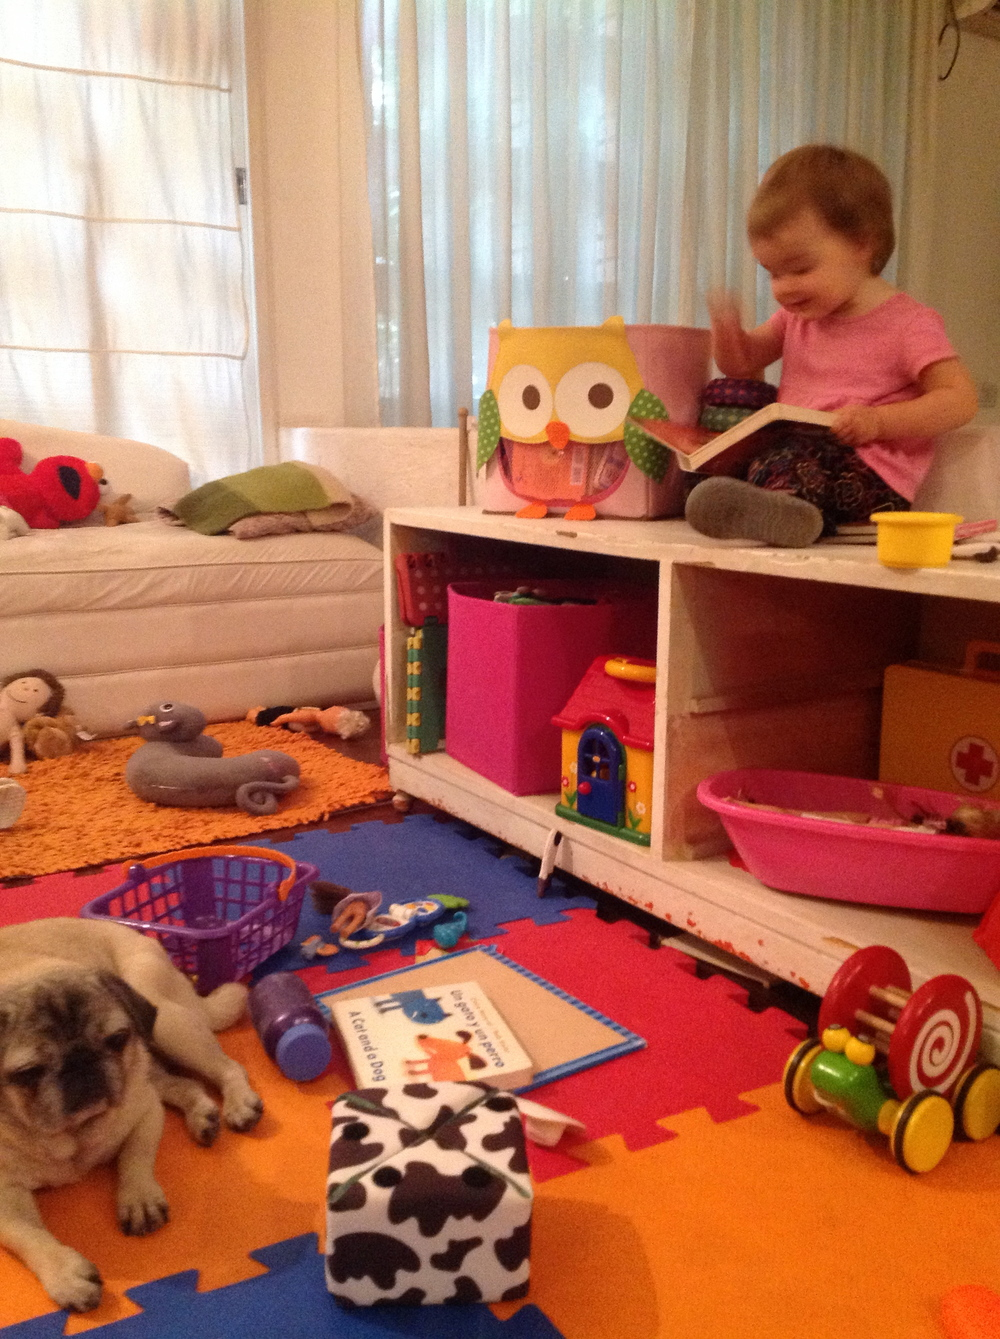 Little F (along with Paloma the Pug) in the play area. Look at all the STUFF!